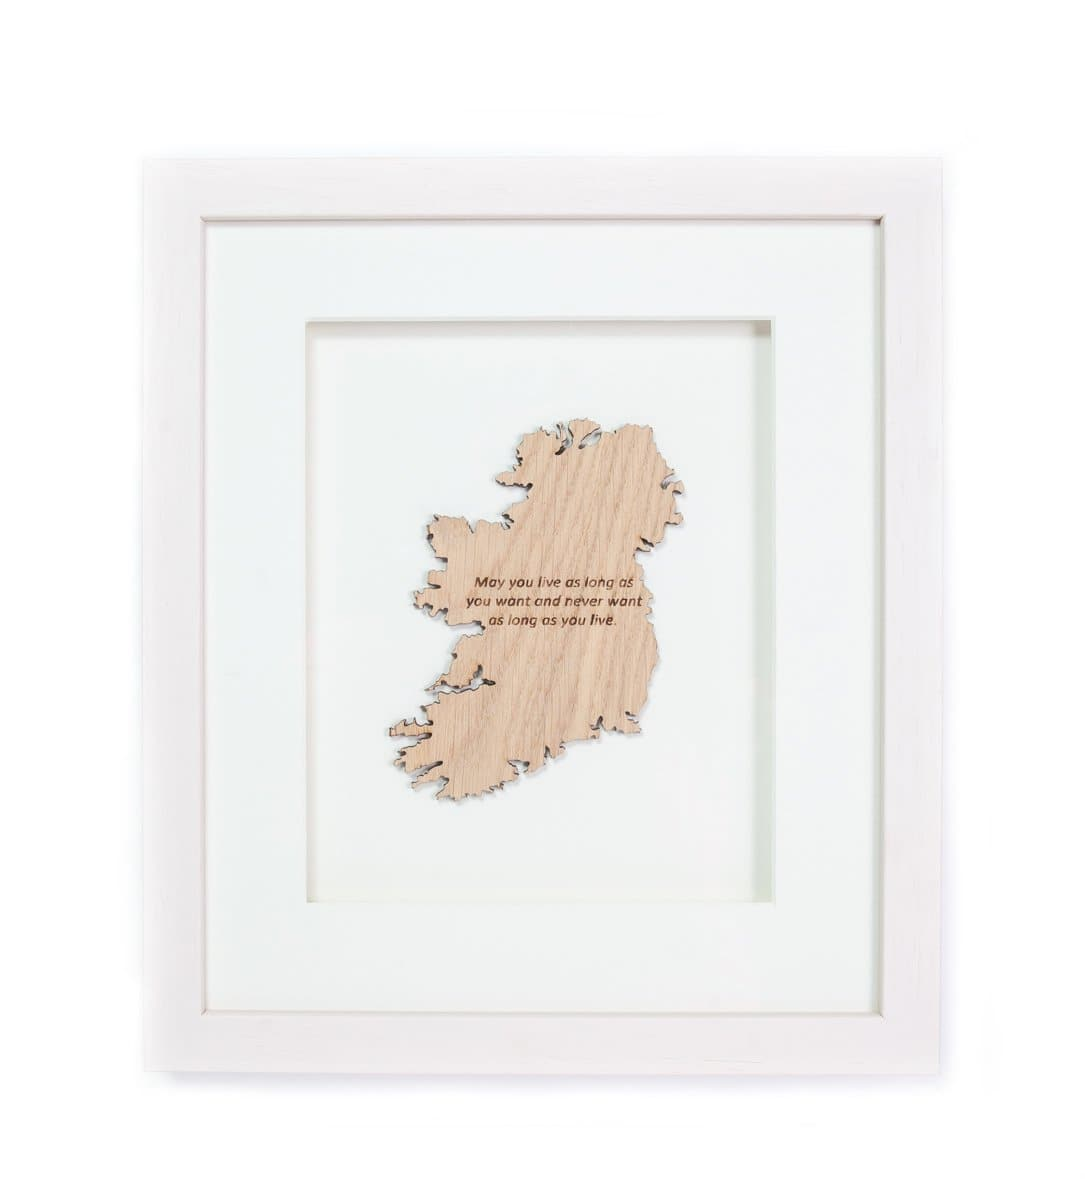 Irish Blessing Live Long Irish Toast Made In Ireland Framed Matted Wall Hanging Irish Saying Unique Gift Crafted in Co. Meath by Caulfield Country Boards